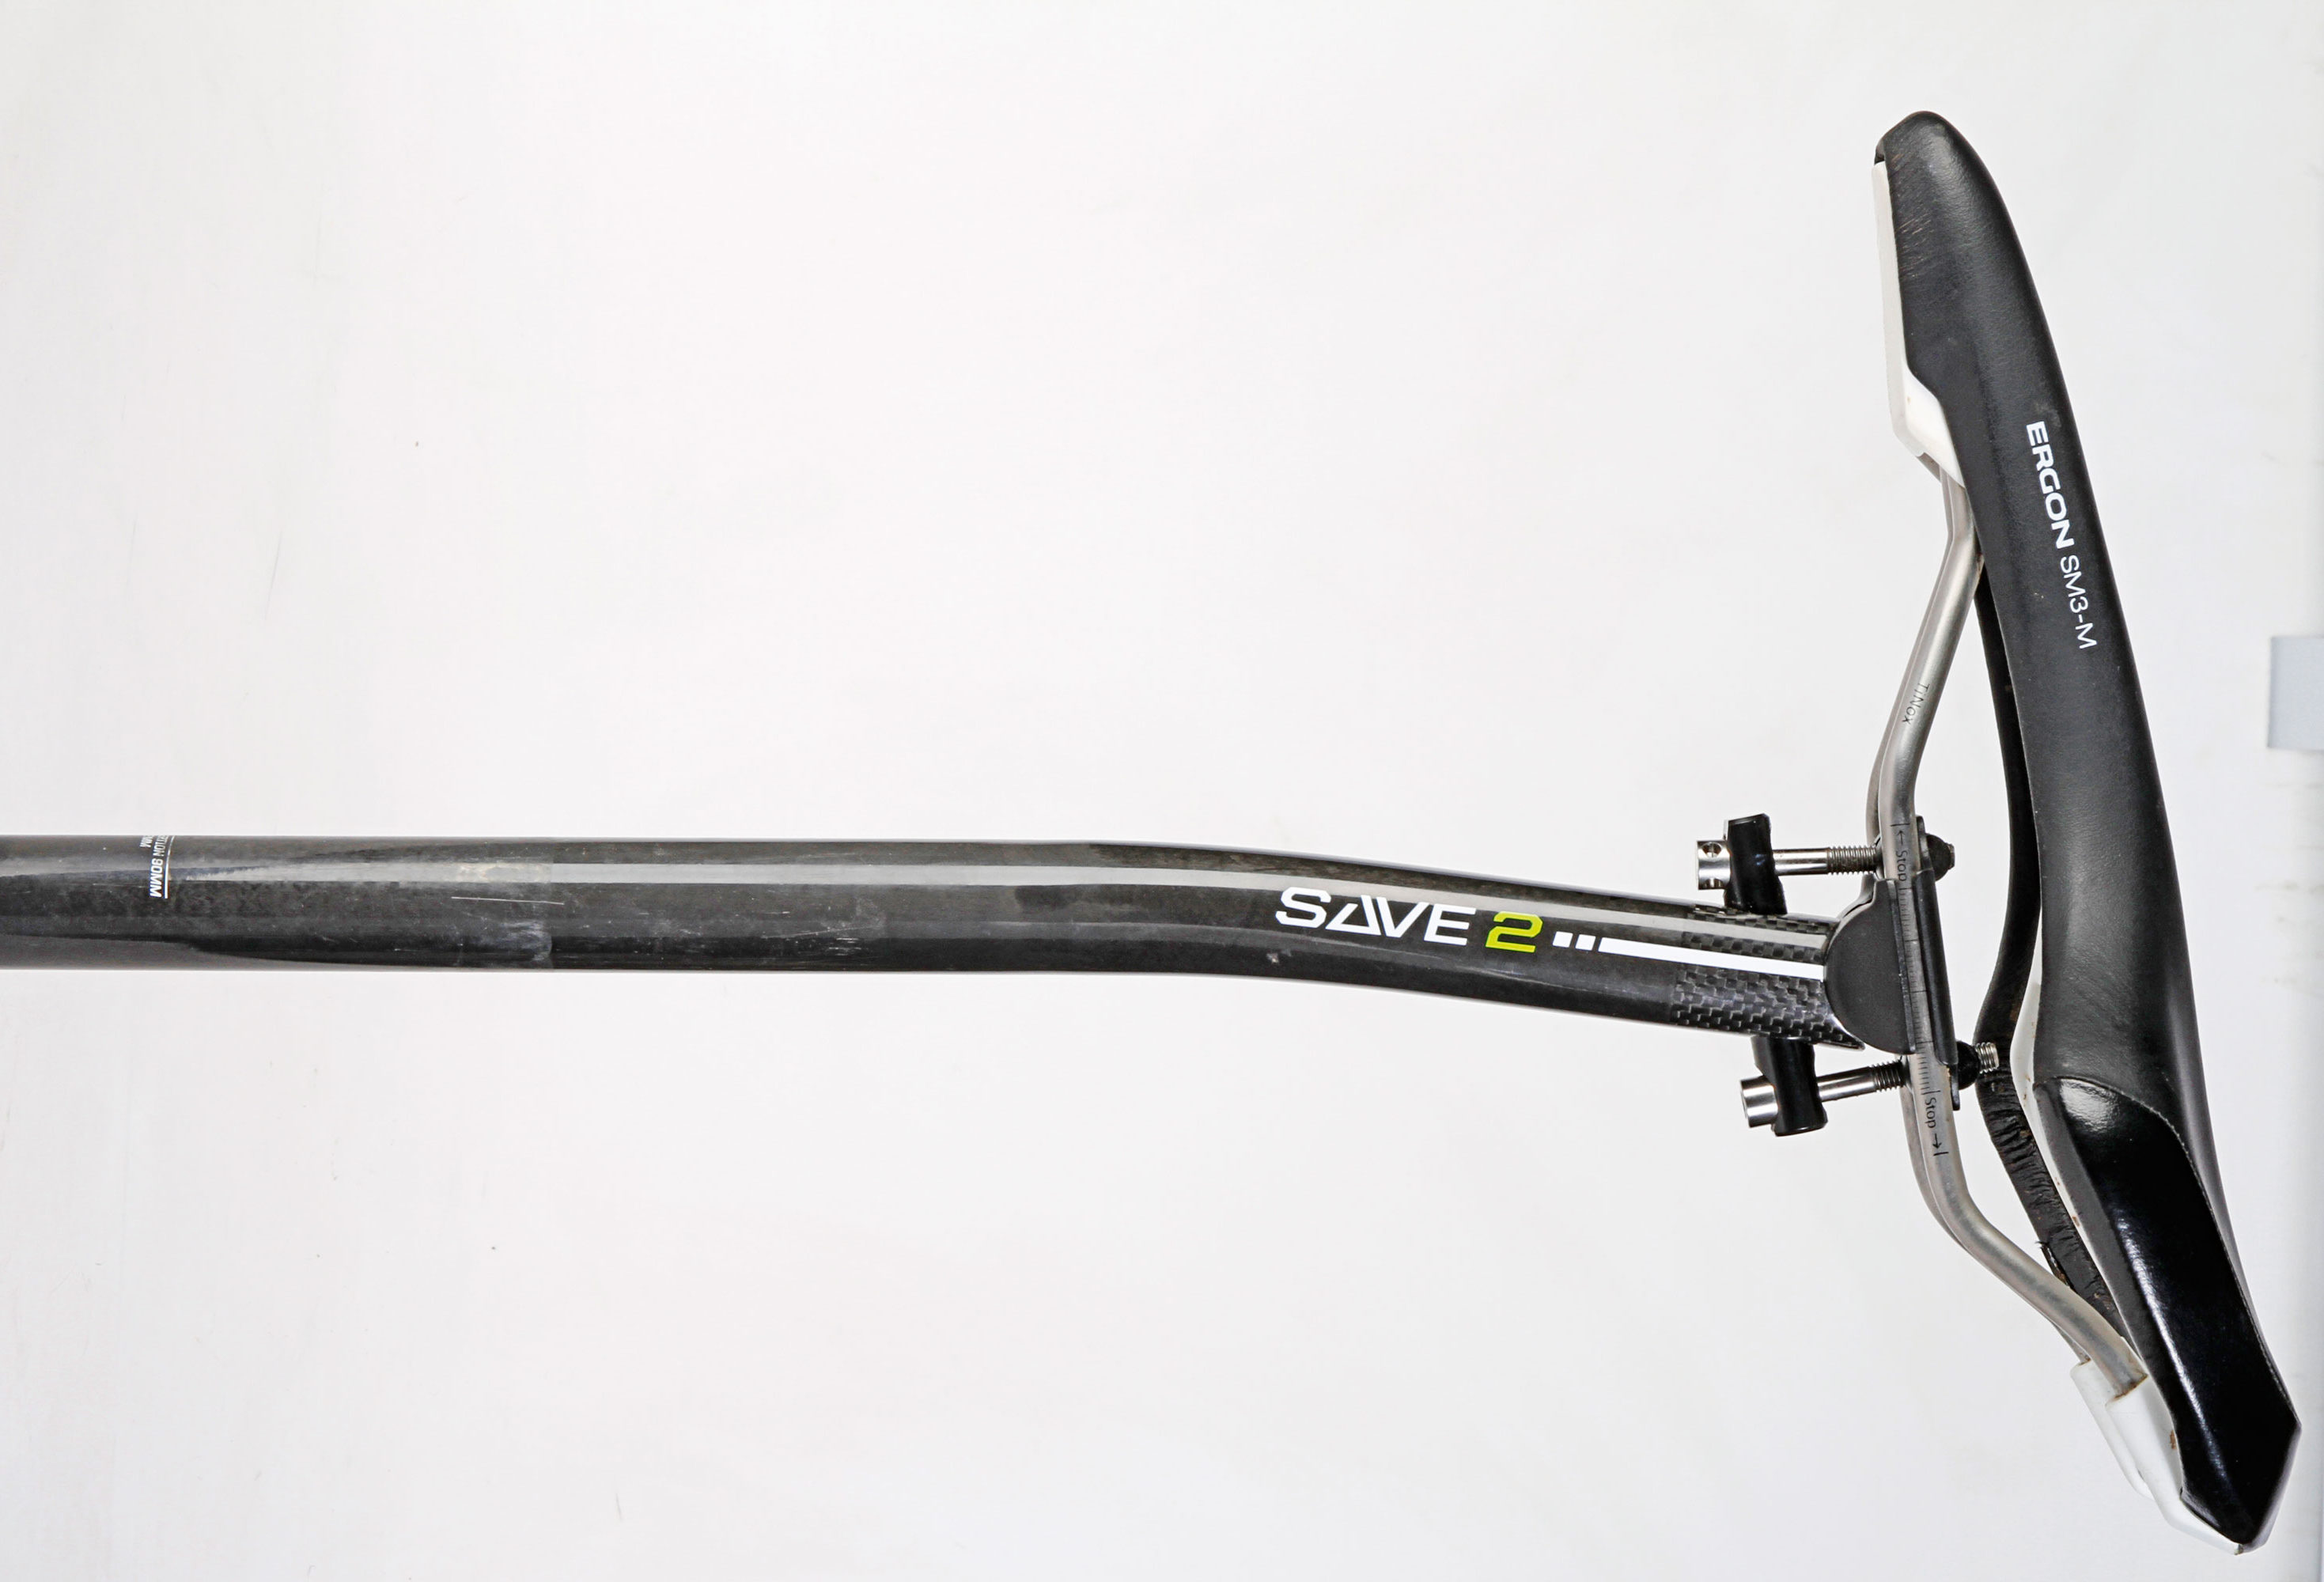 CANNONDALE SAVE2